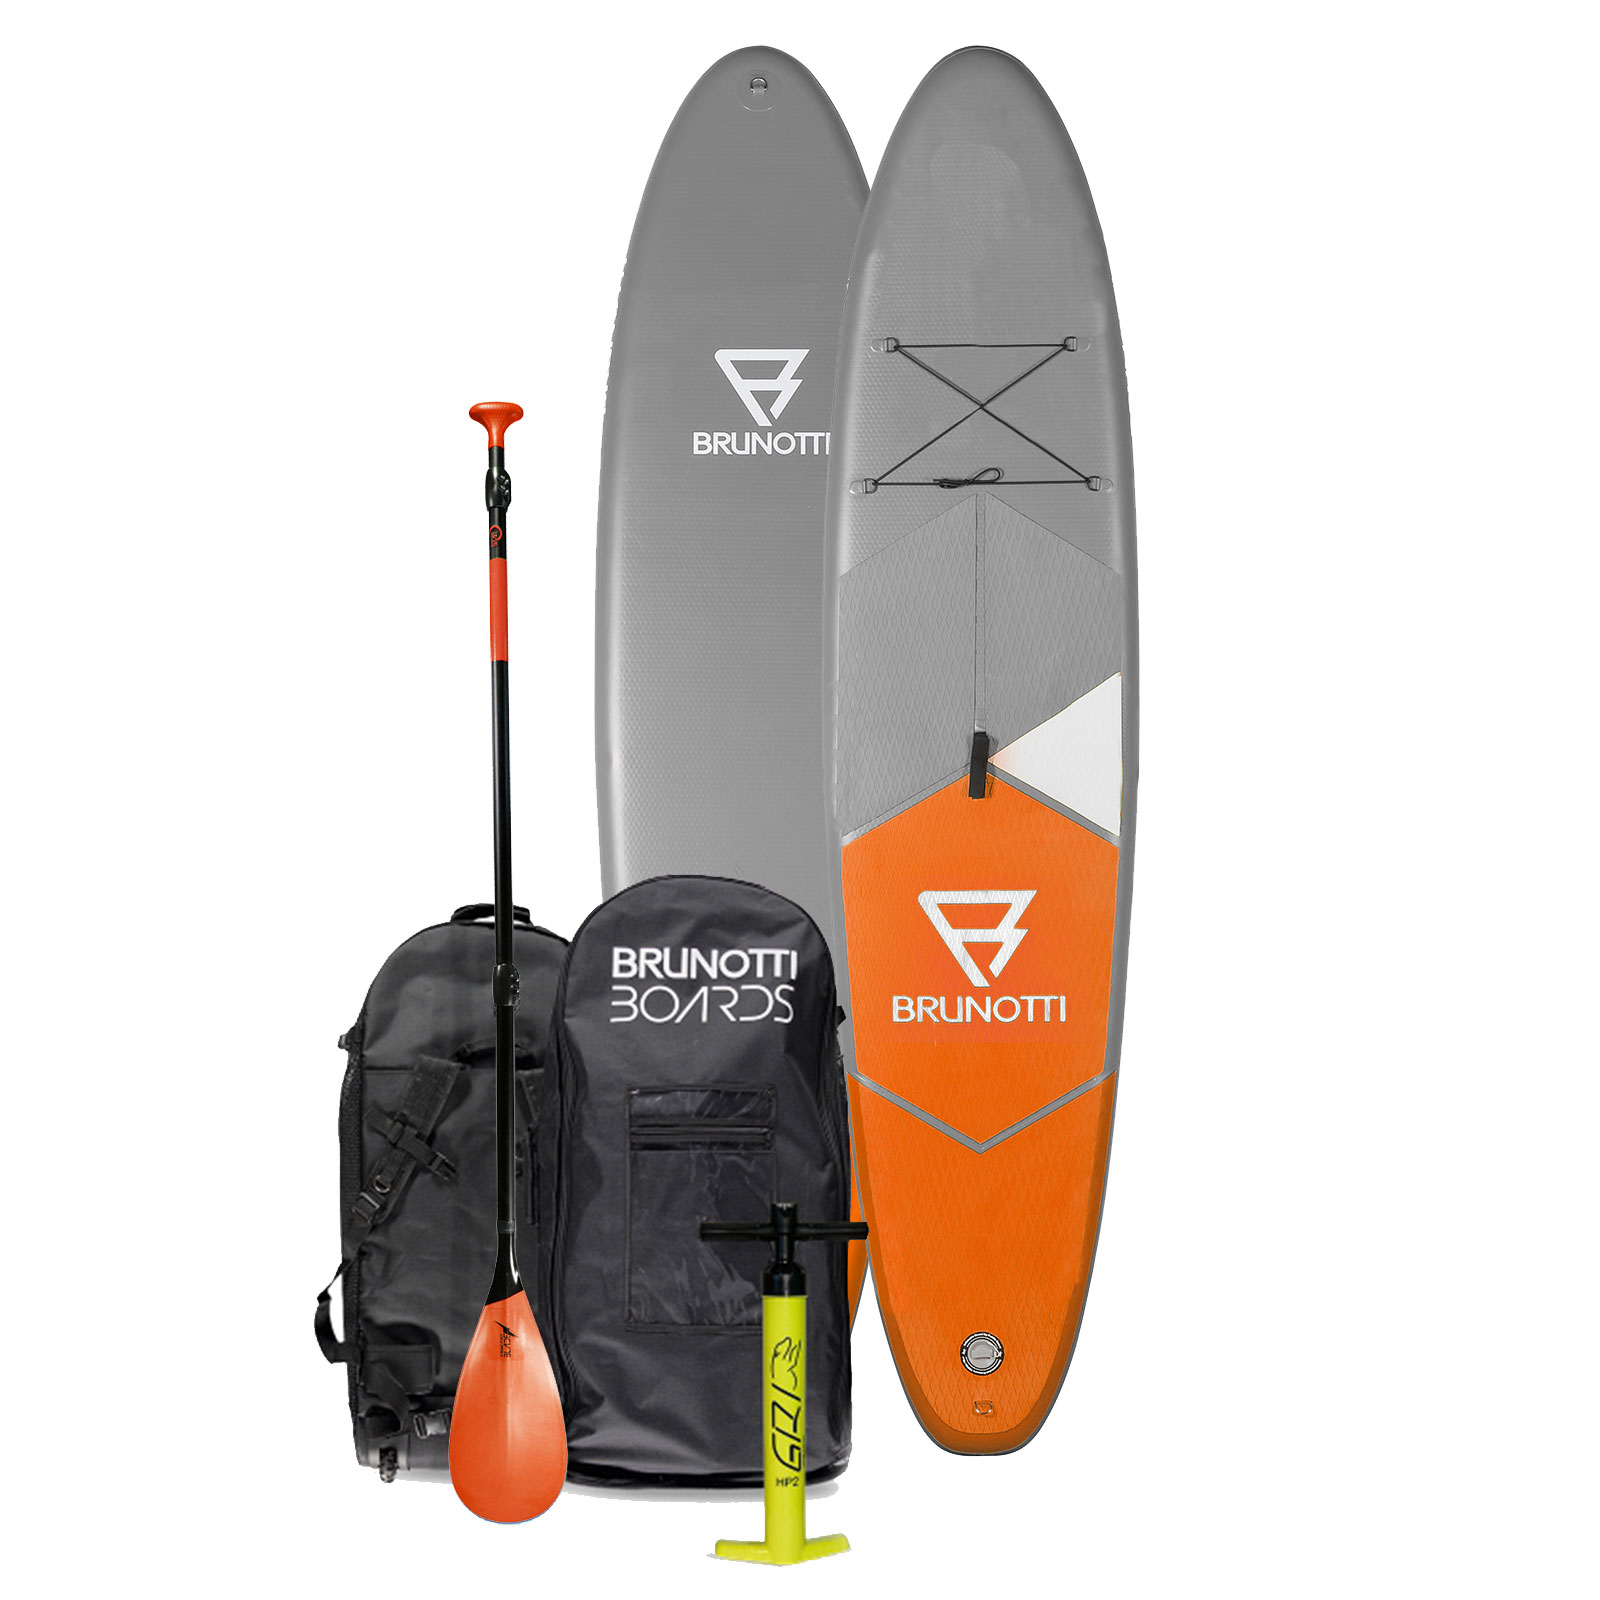 FAT FERRY  ISUP ORANGE - 10'6 BRUNOTTI 2018